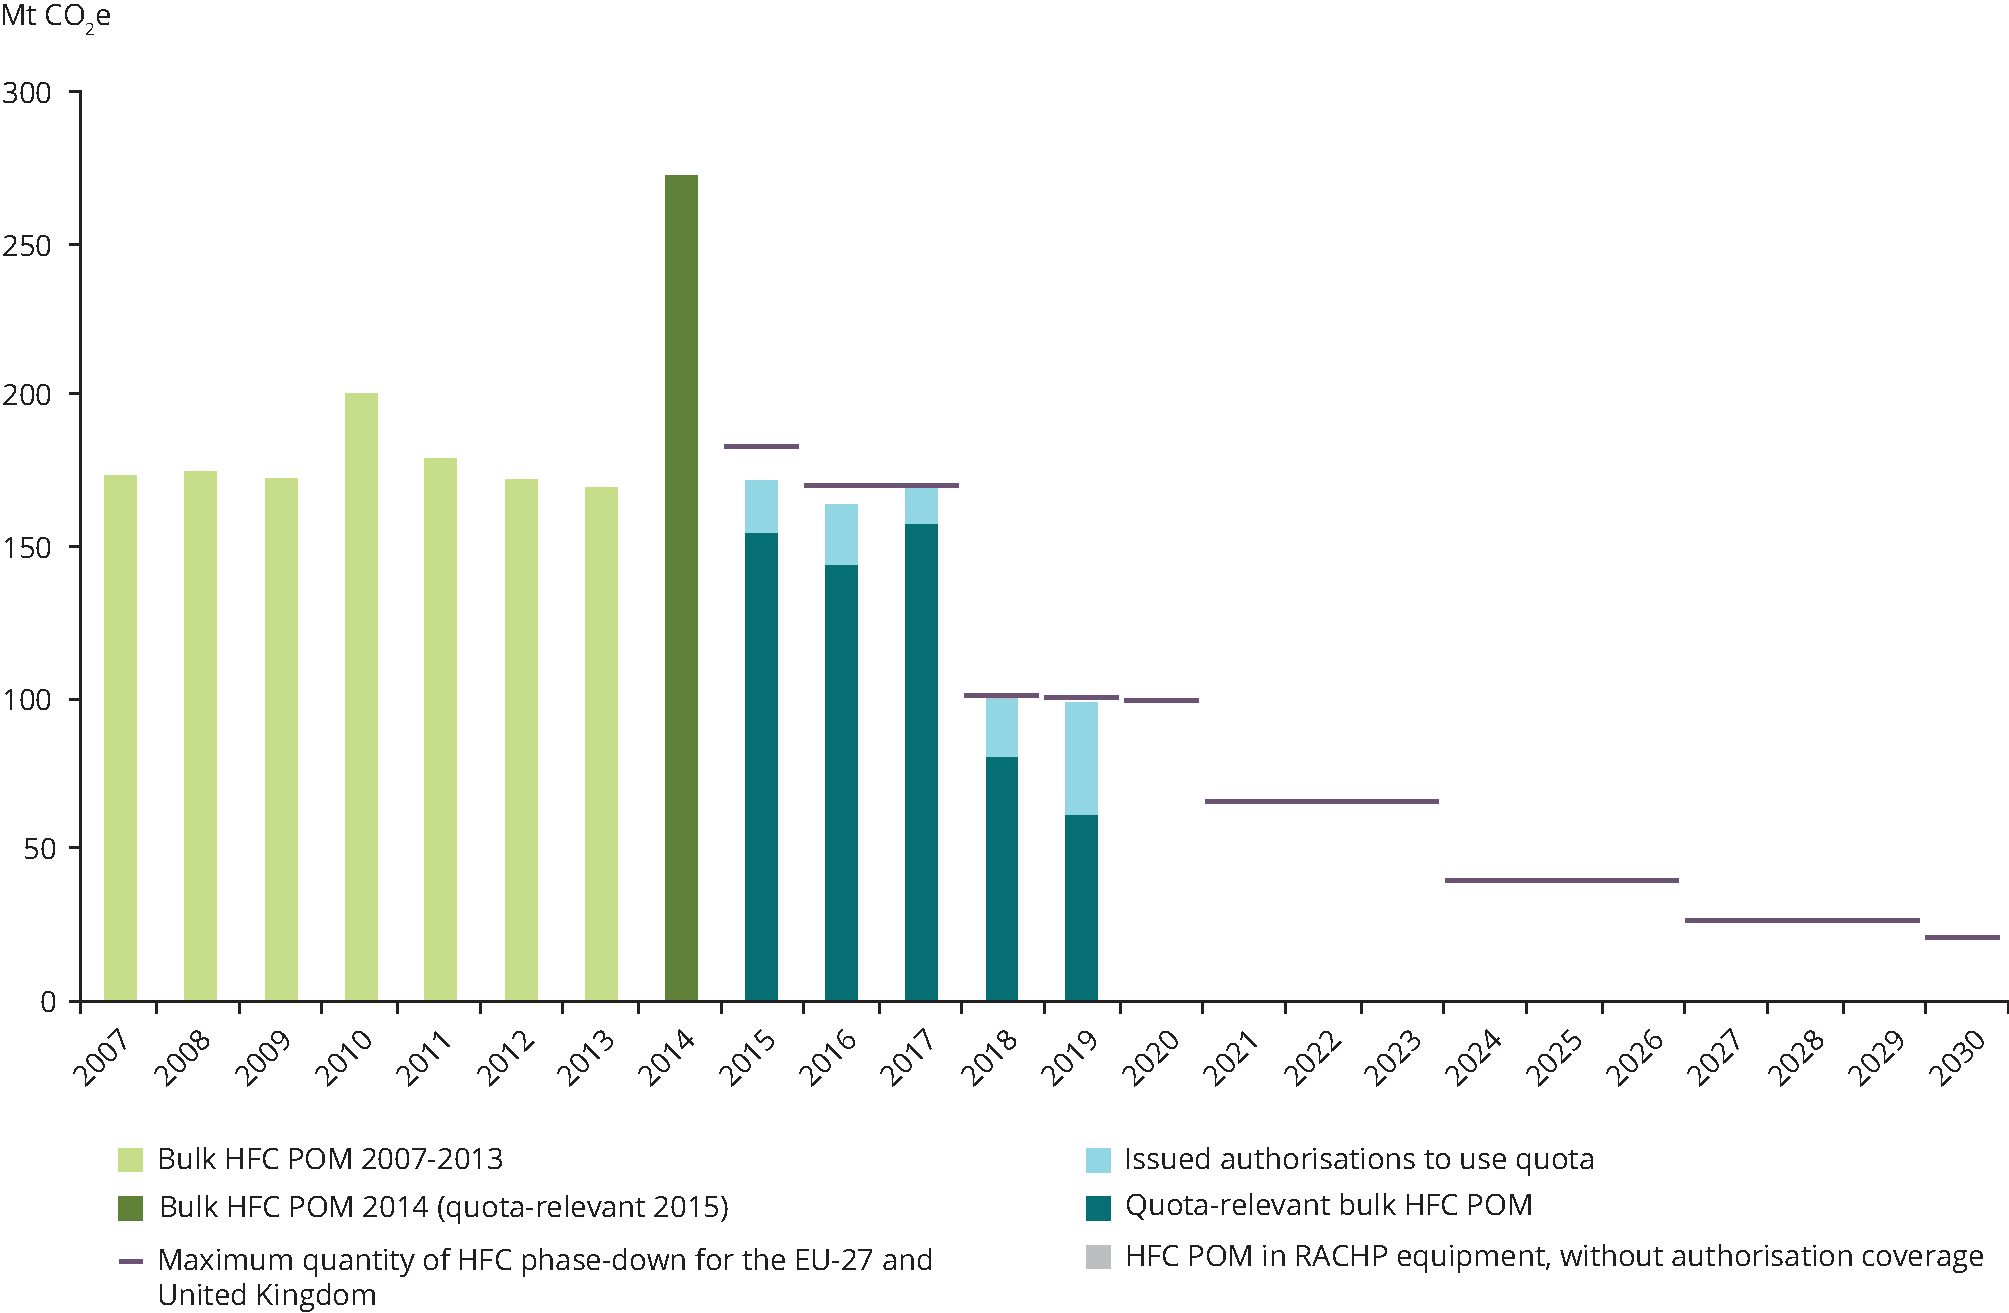 EU progress under the hydrofluorocarbon phase-down set out in the EU F-gas Regulation